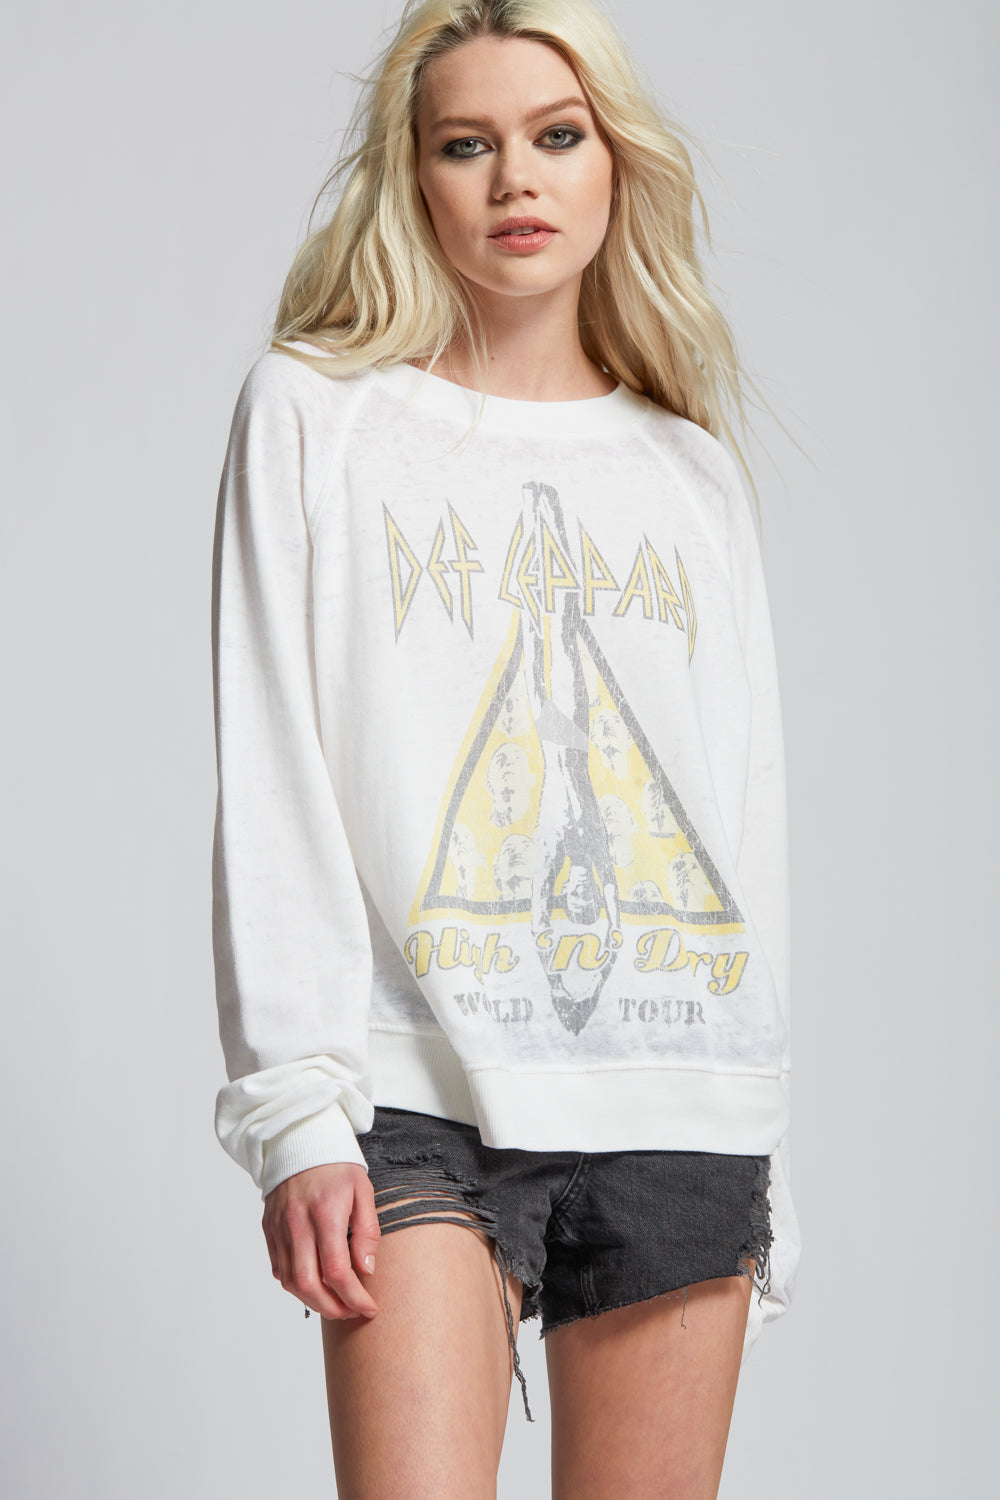 Def Leppard High 'n' Dry Tour Sweatshirt